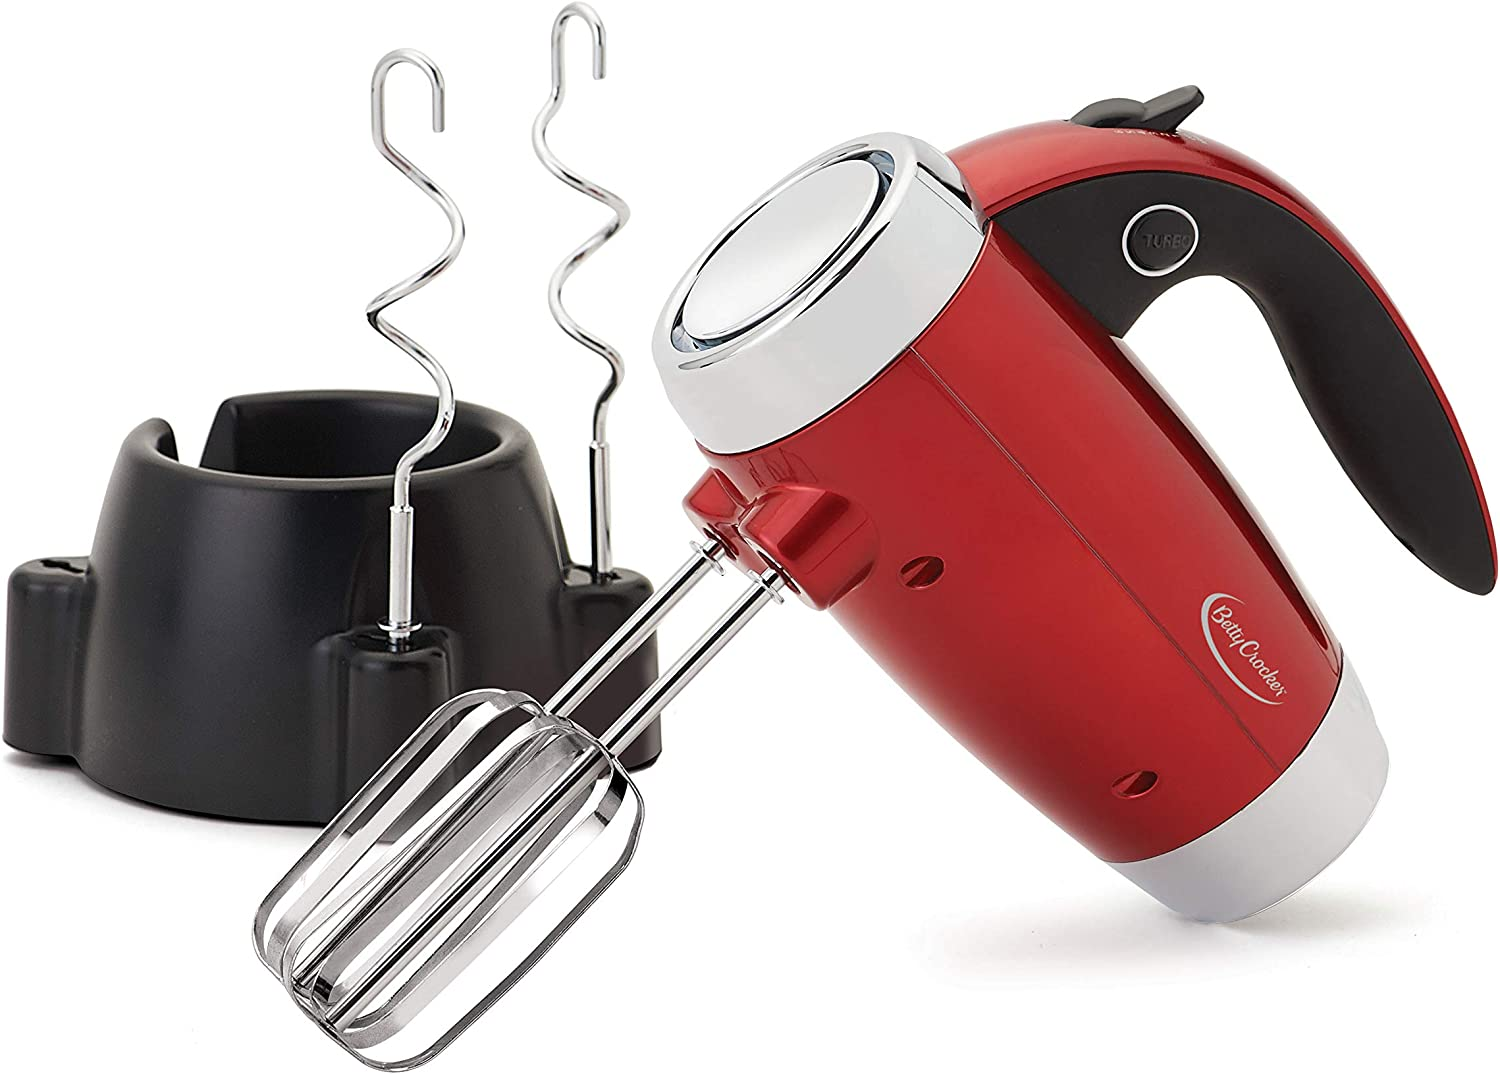 Betty Crocker 7 Speed Hand Mixer with Stand with Chrome Beater and Hooks, Metallic Red